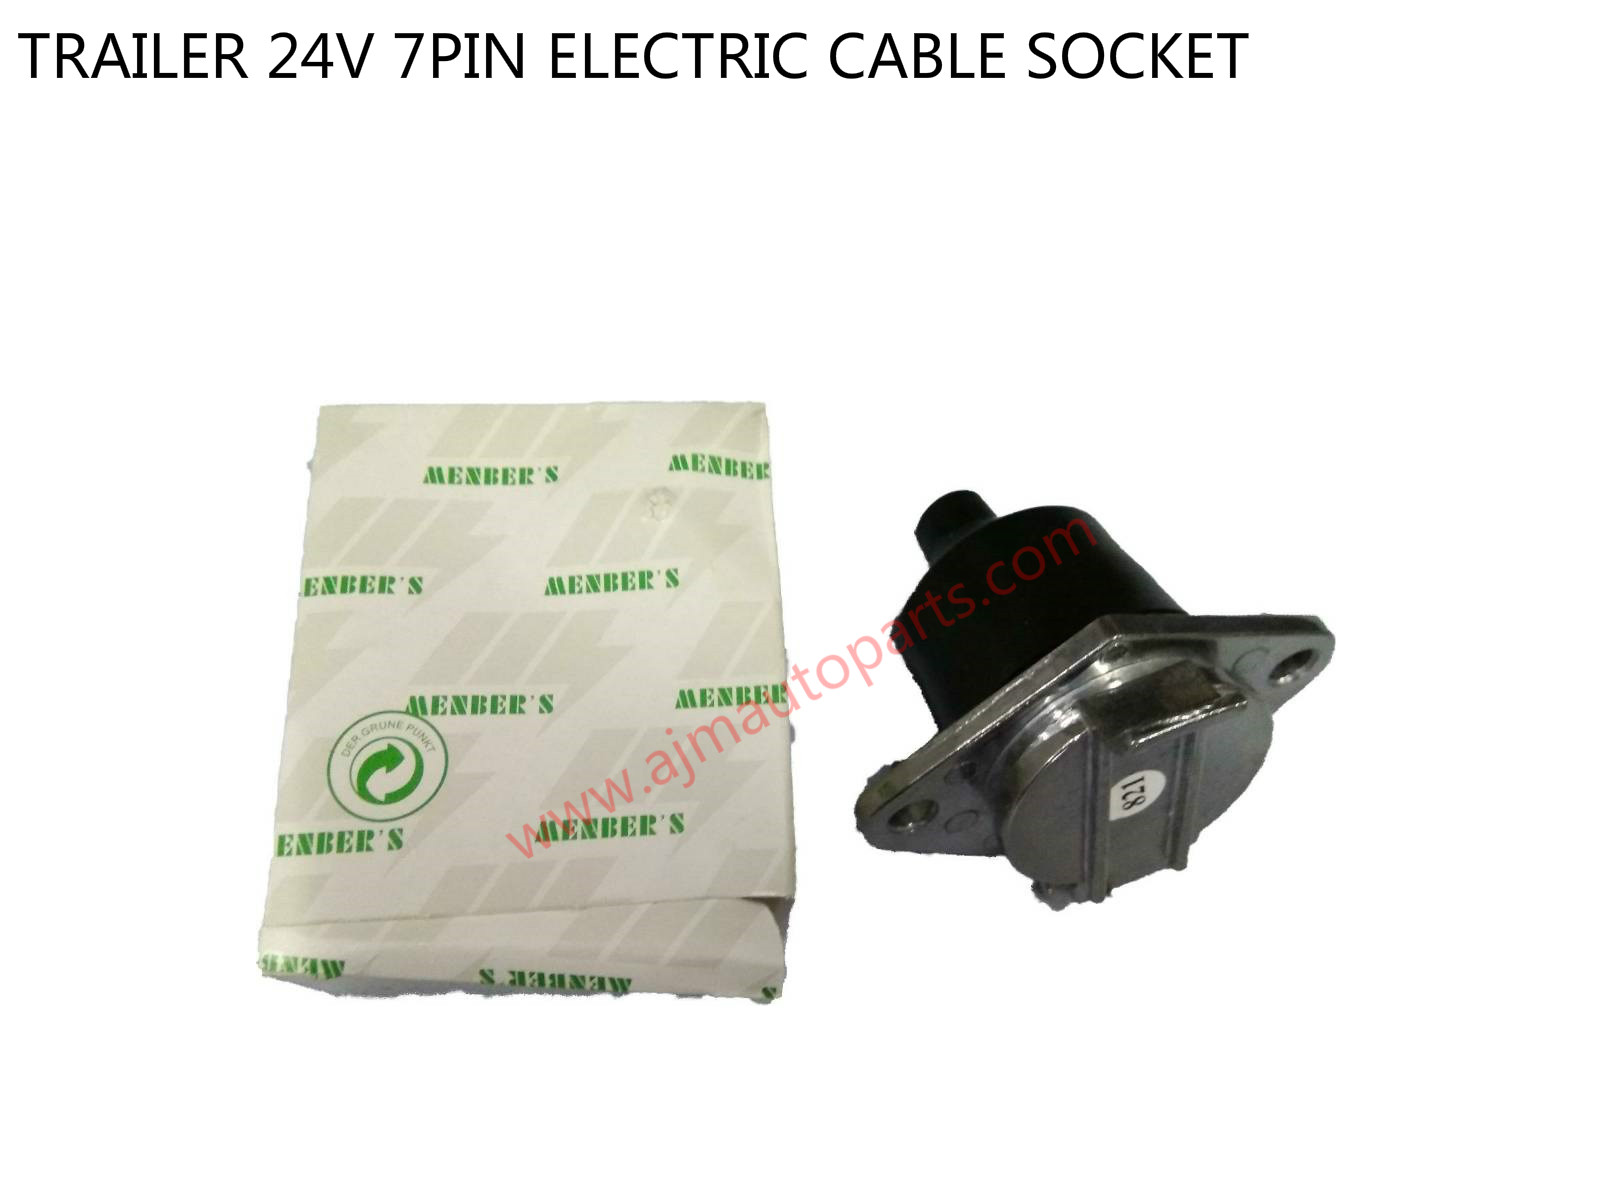 TRAILER 24V 7PIN ELECTRIC CABLE SOCKET